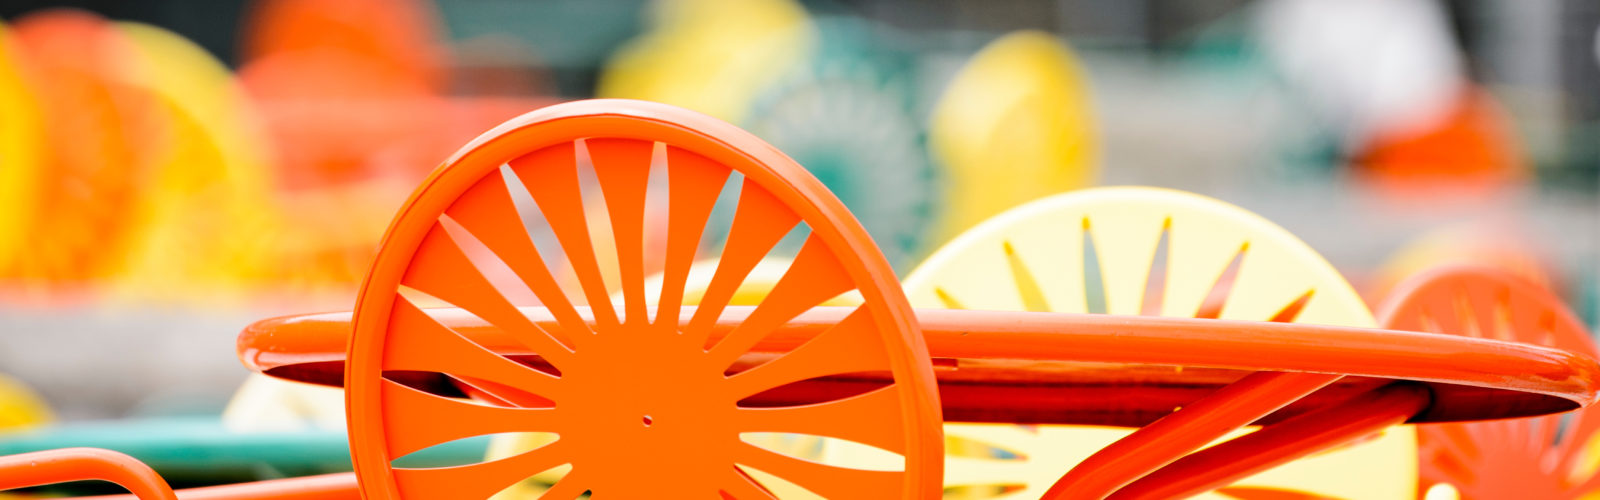 Orange terrace chair at a table